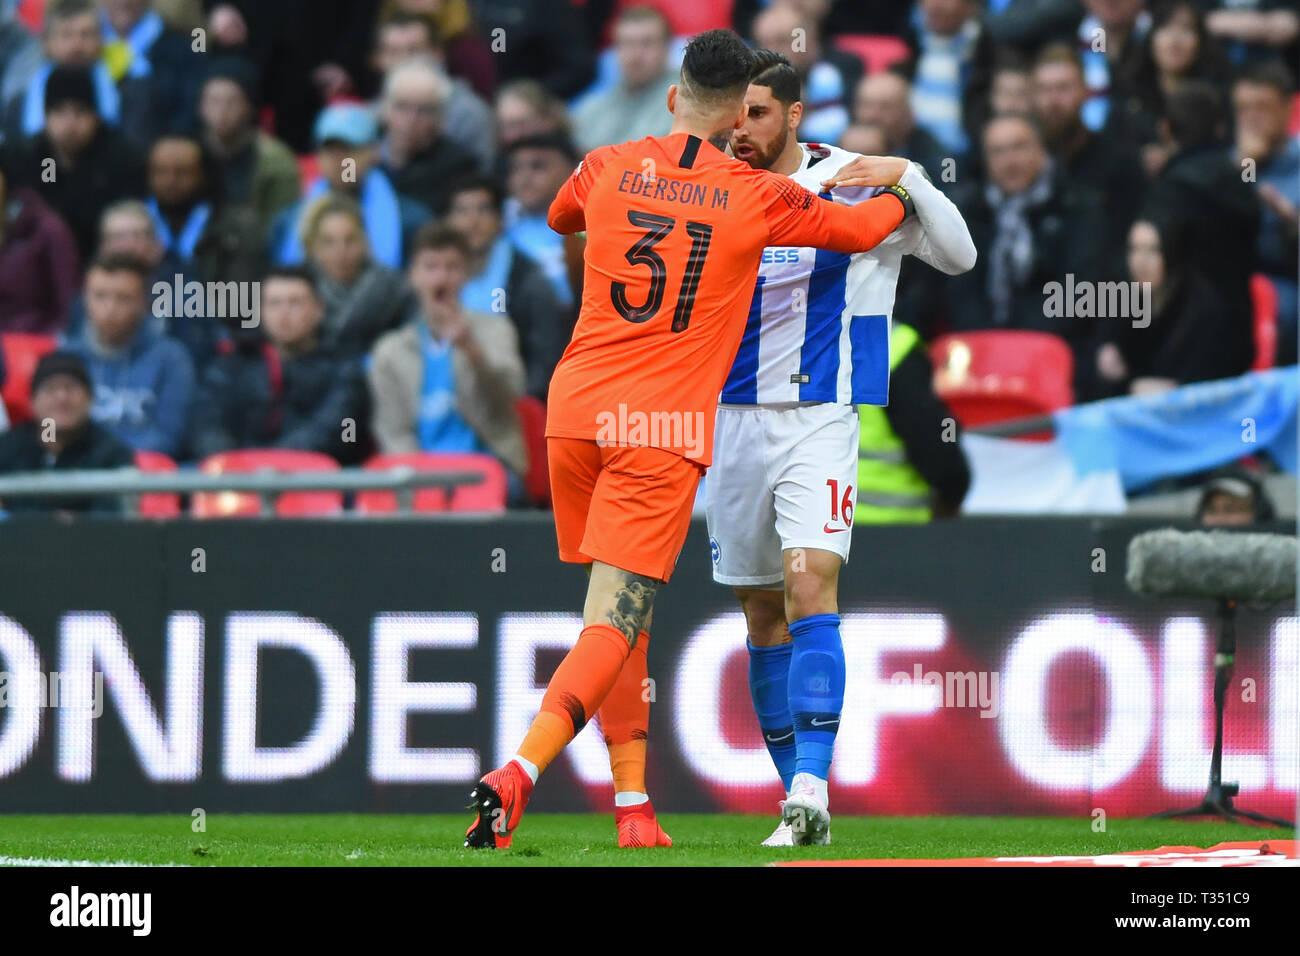 London, UK. 6th Apr, 2019. Manchester City goalkeeper Ederson Moraes holds Brighton forward Alireza Jahanbakhsh back during the FA Cup Semi Final between Brighton and Hove Albion and Manchester City at Wembley Stadium, London on Saturday 6th April 2019. (Credit: Jon Bromley | MI News) Editorial use only, license required for commercial use. No use in betting, games or a single club/league/player publications. Photograph may only be used for newspaper and/or magazine editorial purposes. Credit: MI News & Sport /Alamy Live News Stock Photo